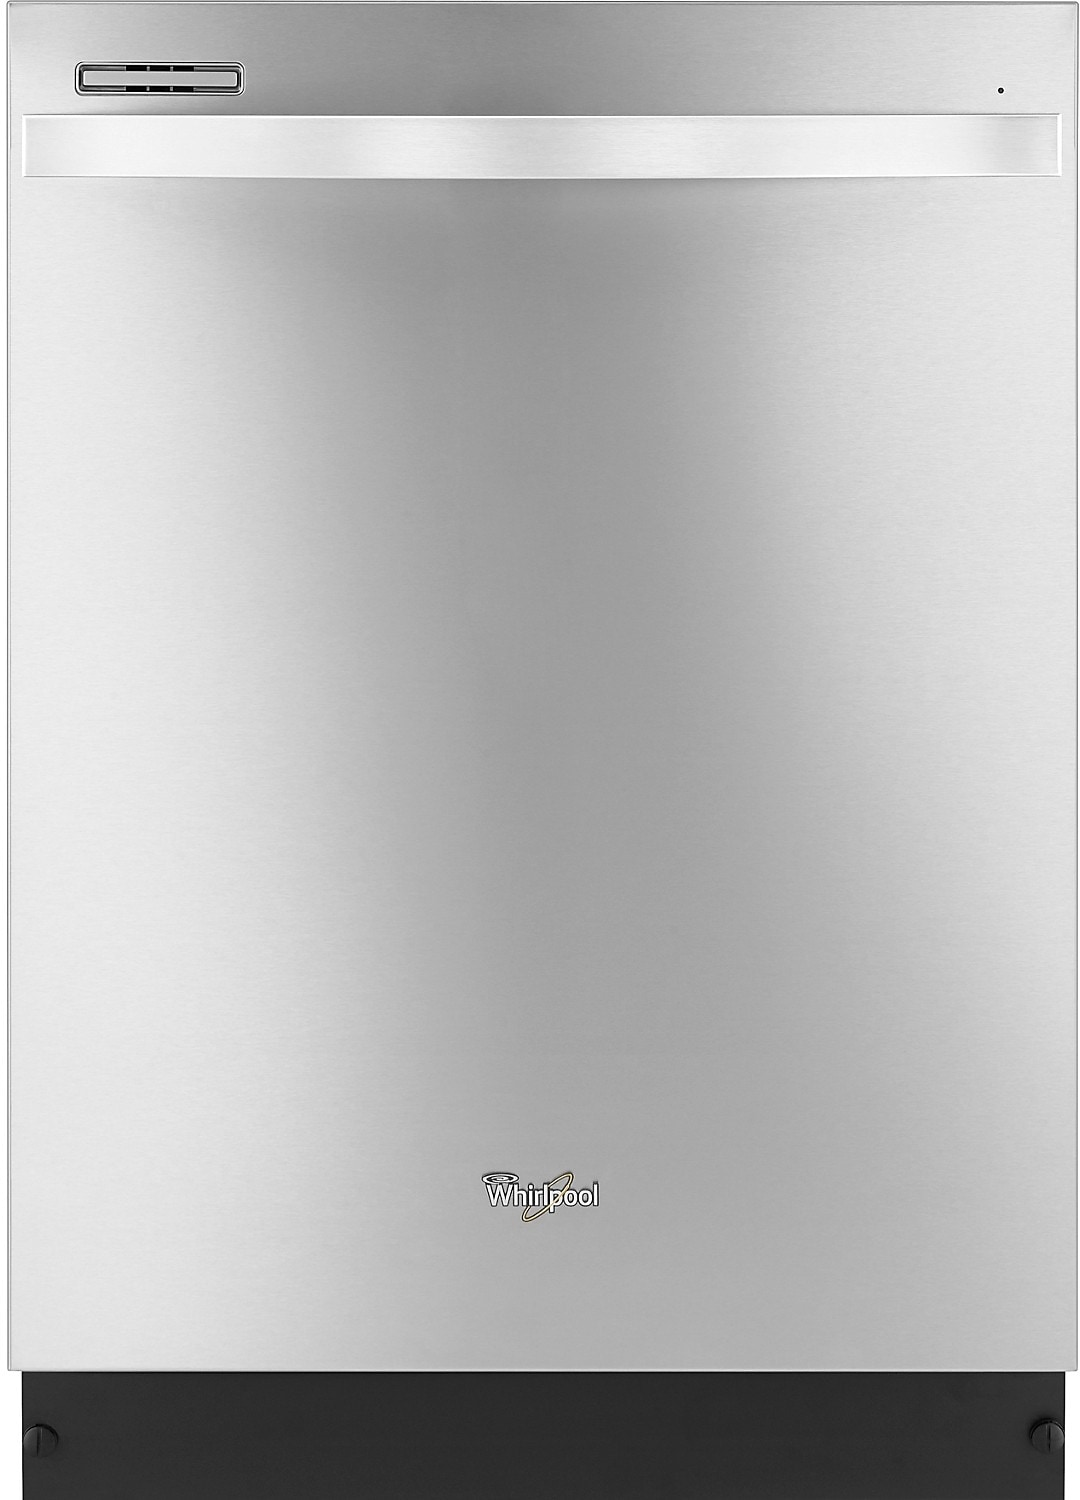 Whirlpool Gold® Built-In Dishwasher with Silverware Spray – Stainless Steel